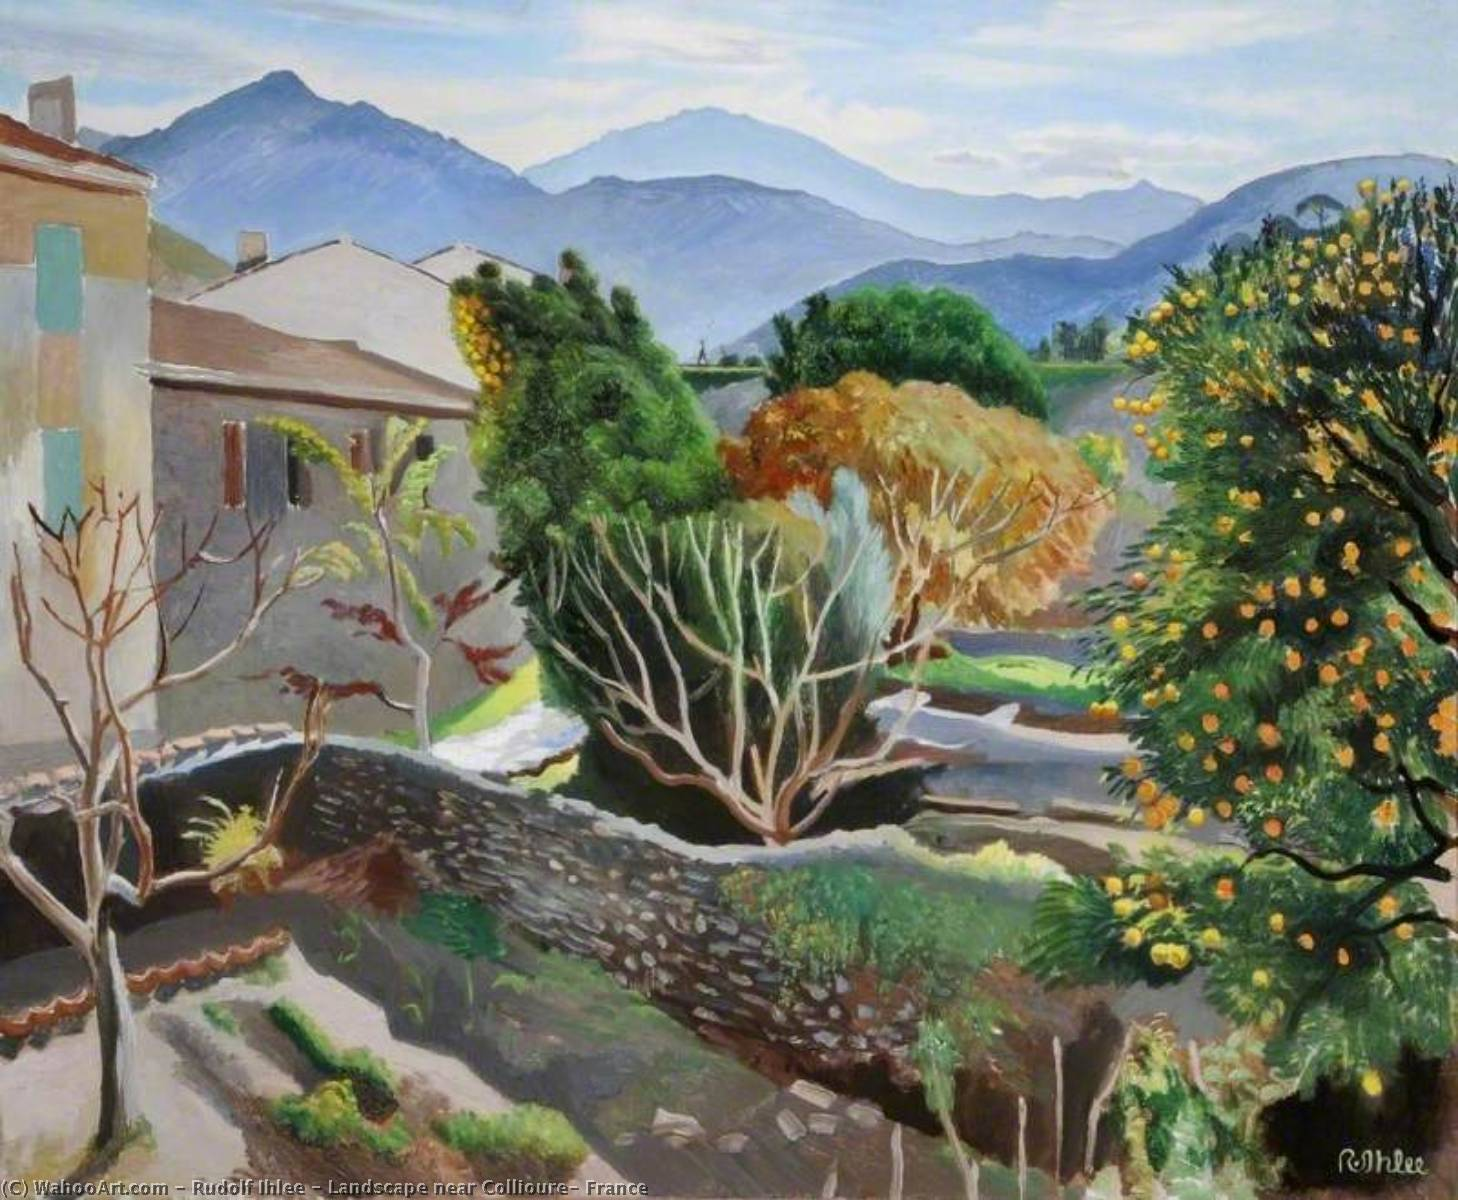 Landscape near Collioure, France, 1930 by Rudolf Ihlee | Museum Art Reproductions Rudolf Ihlee | WahooArt.com